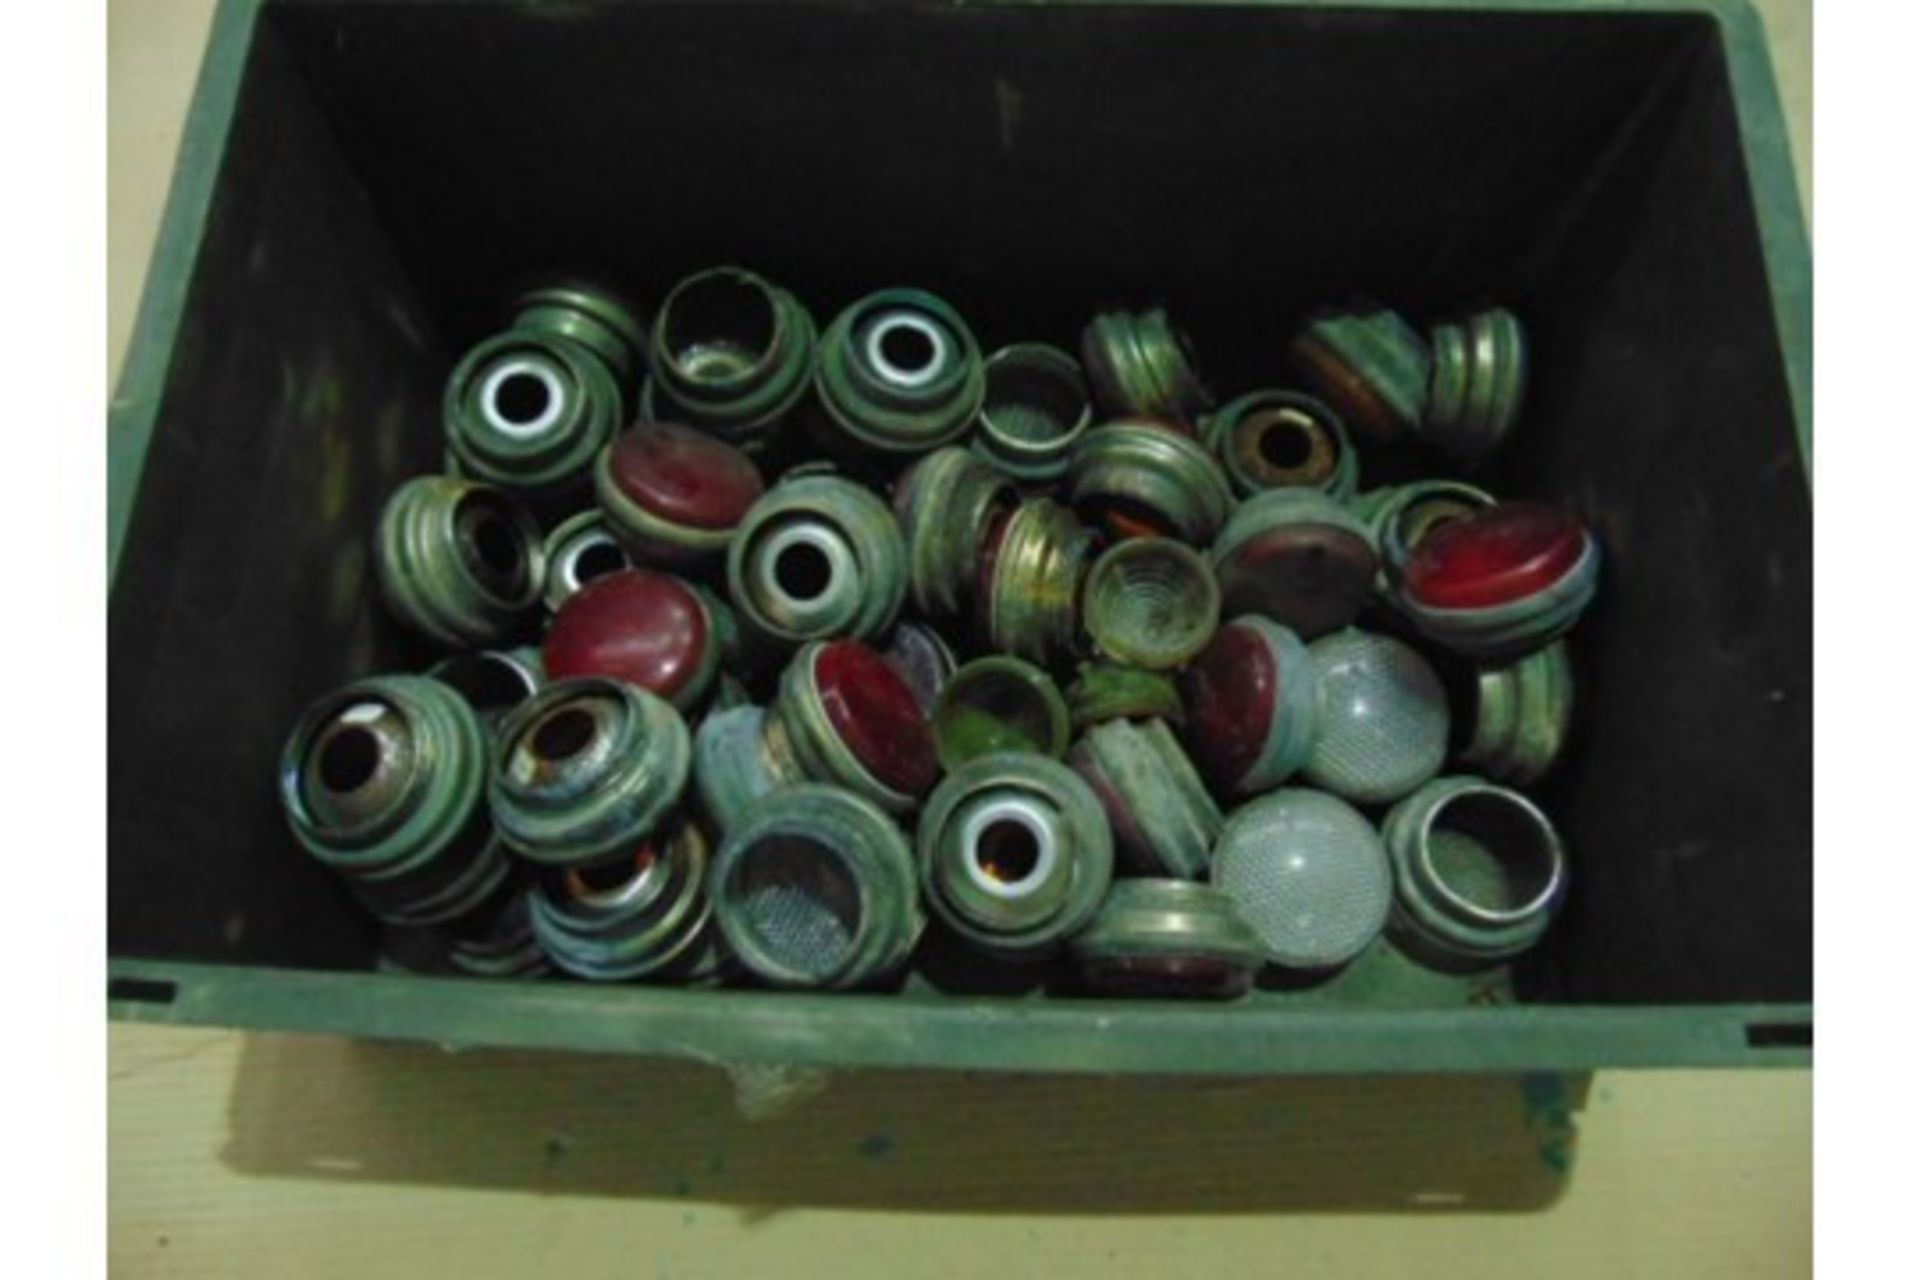 Lot 374 - Various Light Lens AFV/ Land Rover Approx 50